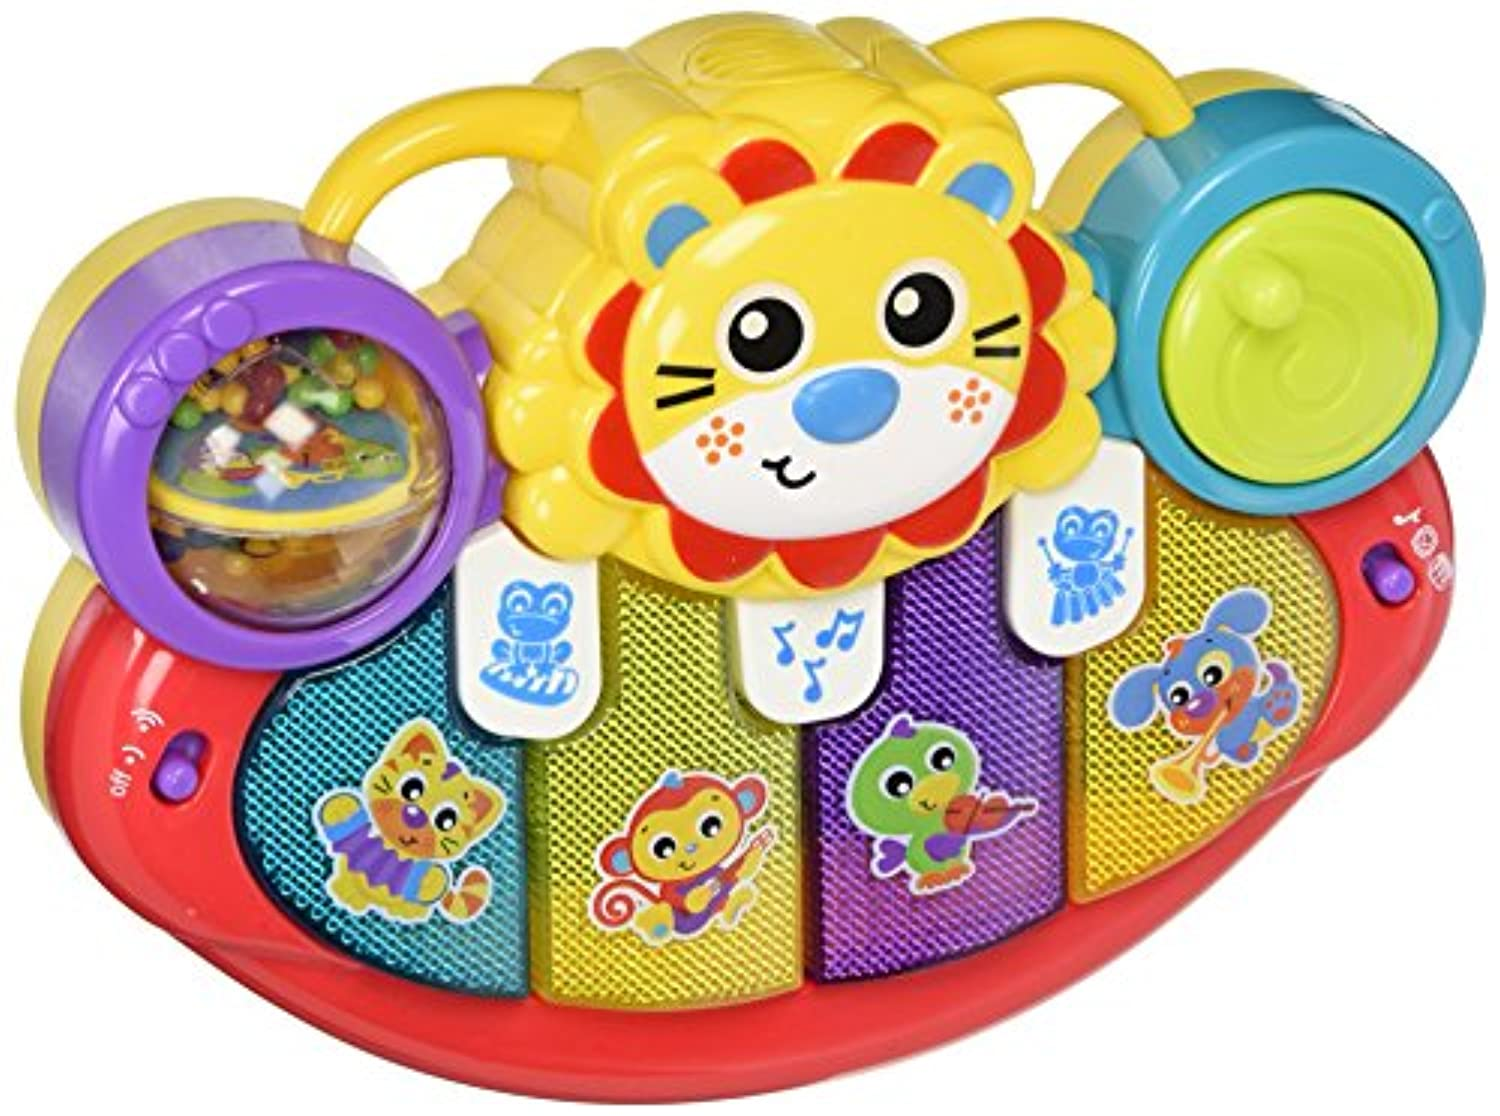 Playgro Lion Activity Kick Toy for Baby by Playgro